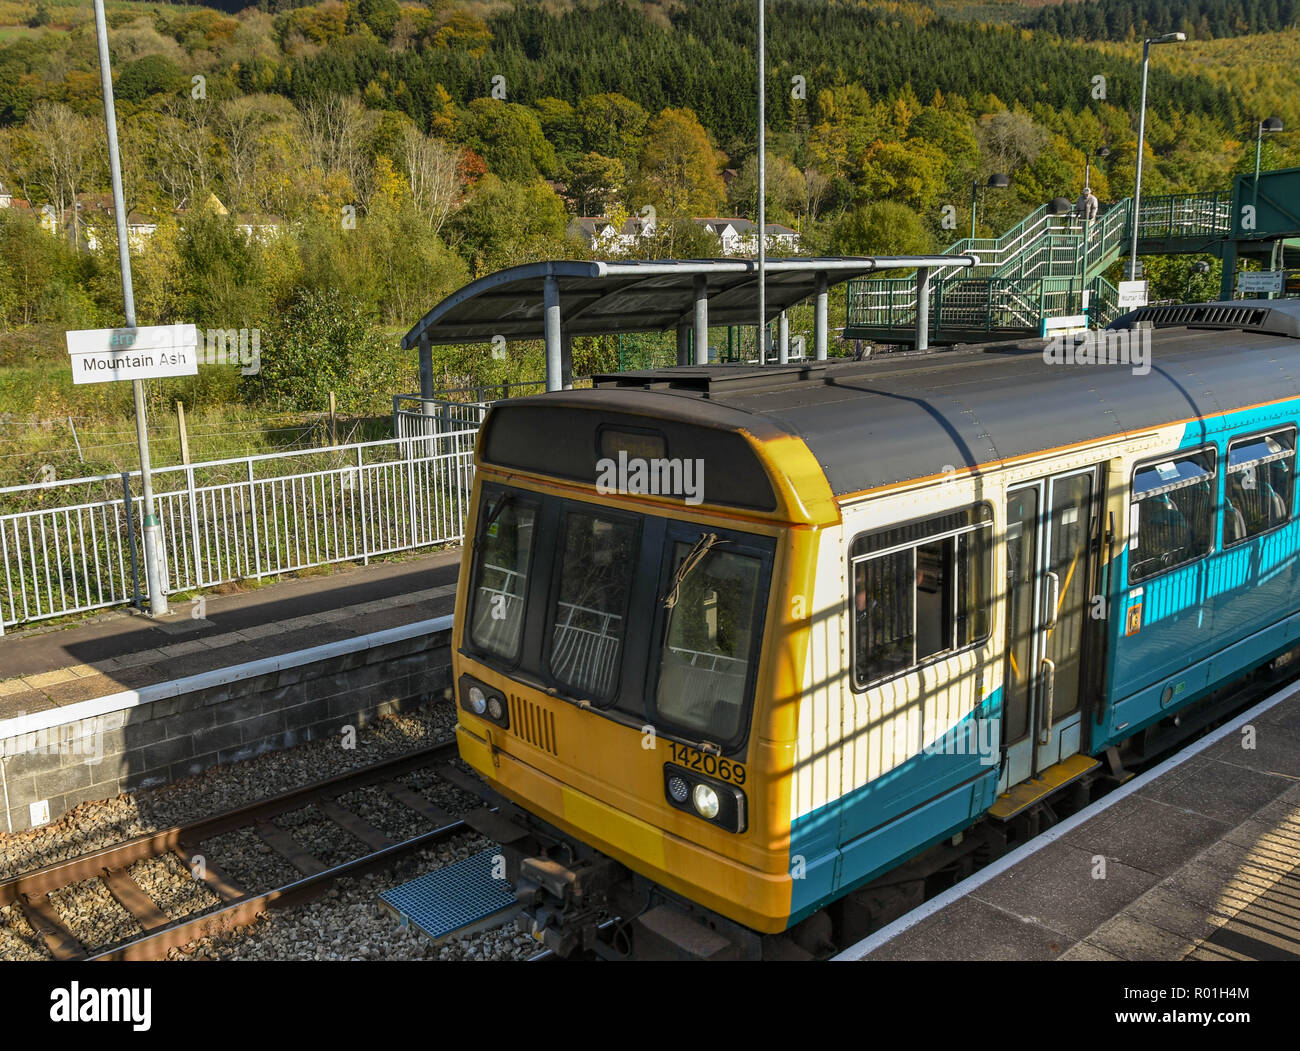 MOUNTAIN ASH, WALES - OCTOBER 2018: Diesel commuter train departing Mountain Ash railway station. - Stock Image